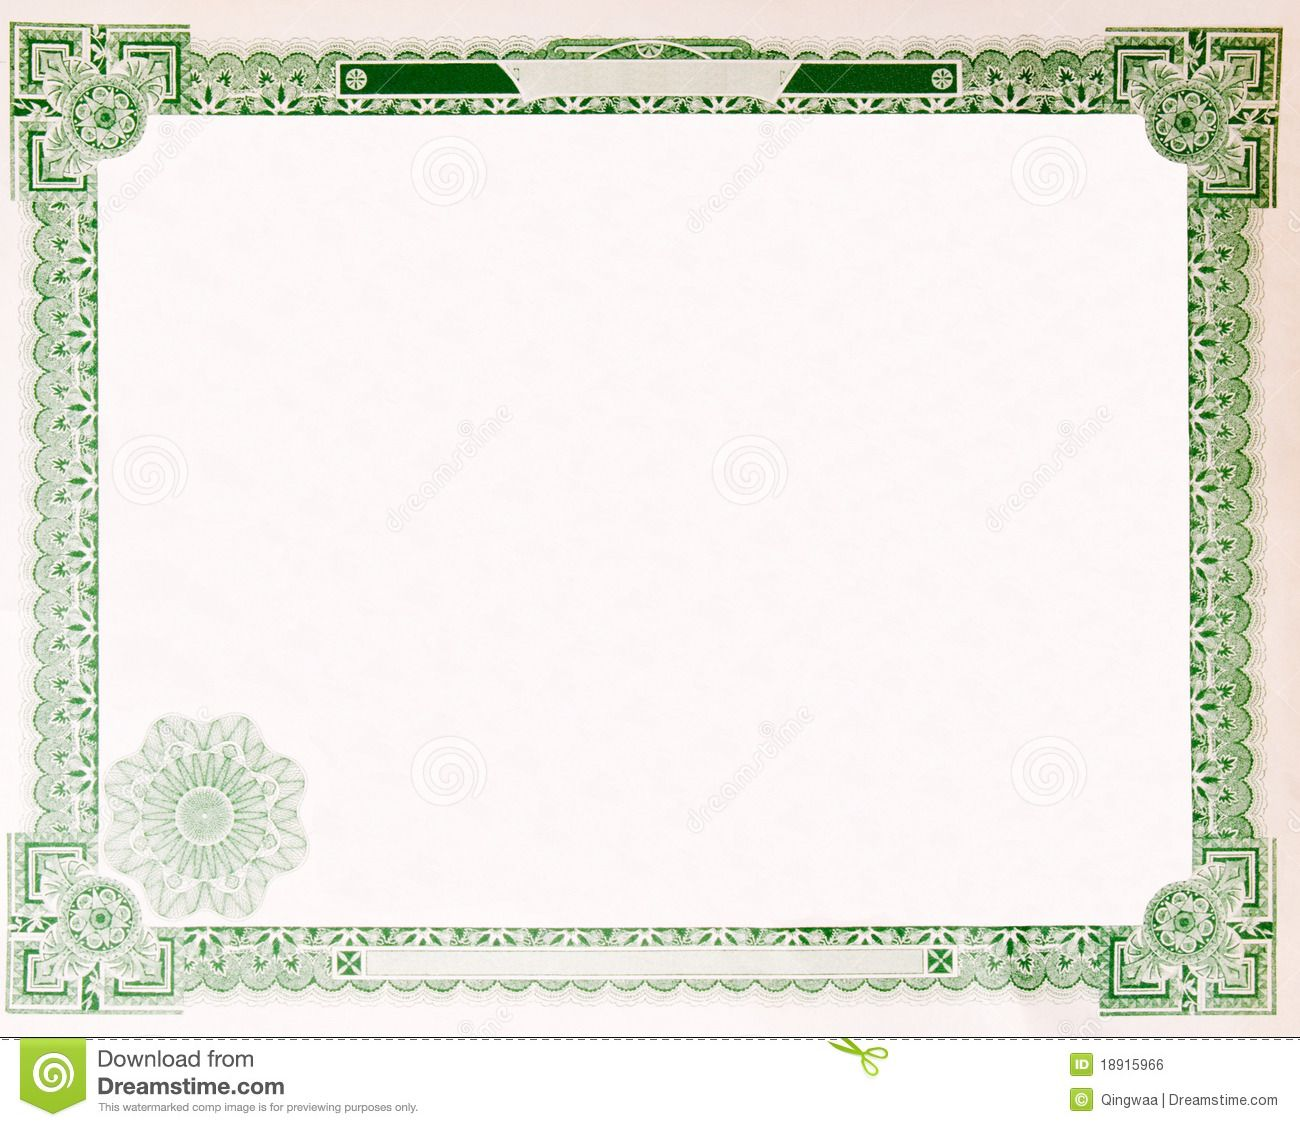 Old Vintage Stock Certificate Empty Border 1914 Stock Photo Image Of Frame Photography 1891 Certificate Templates Stock Certificates Certificate Background